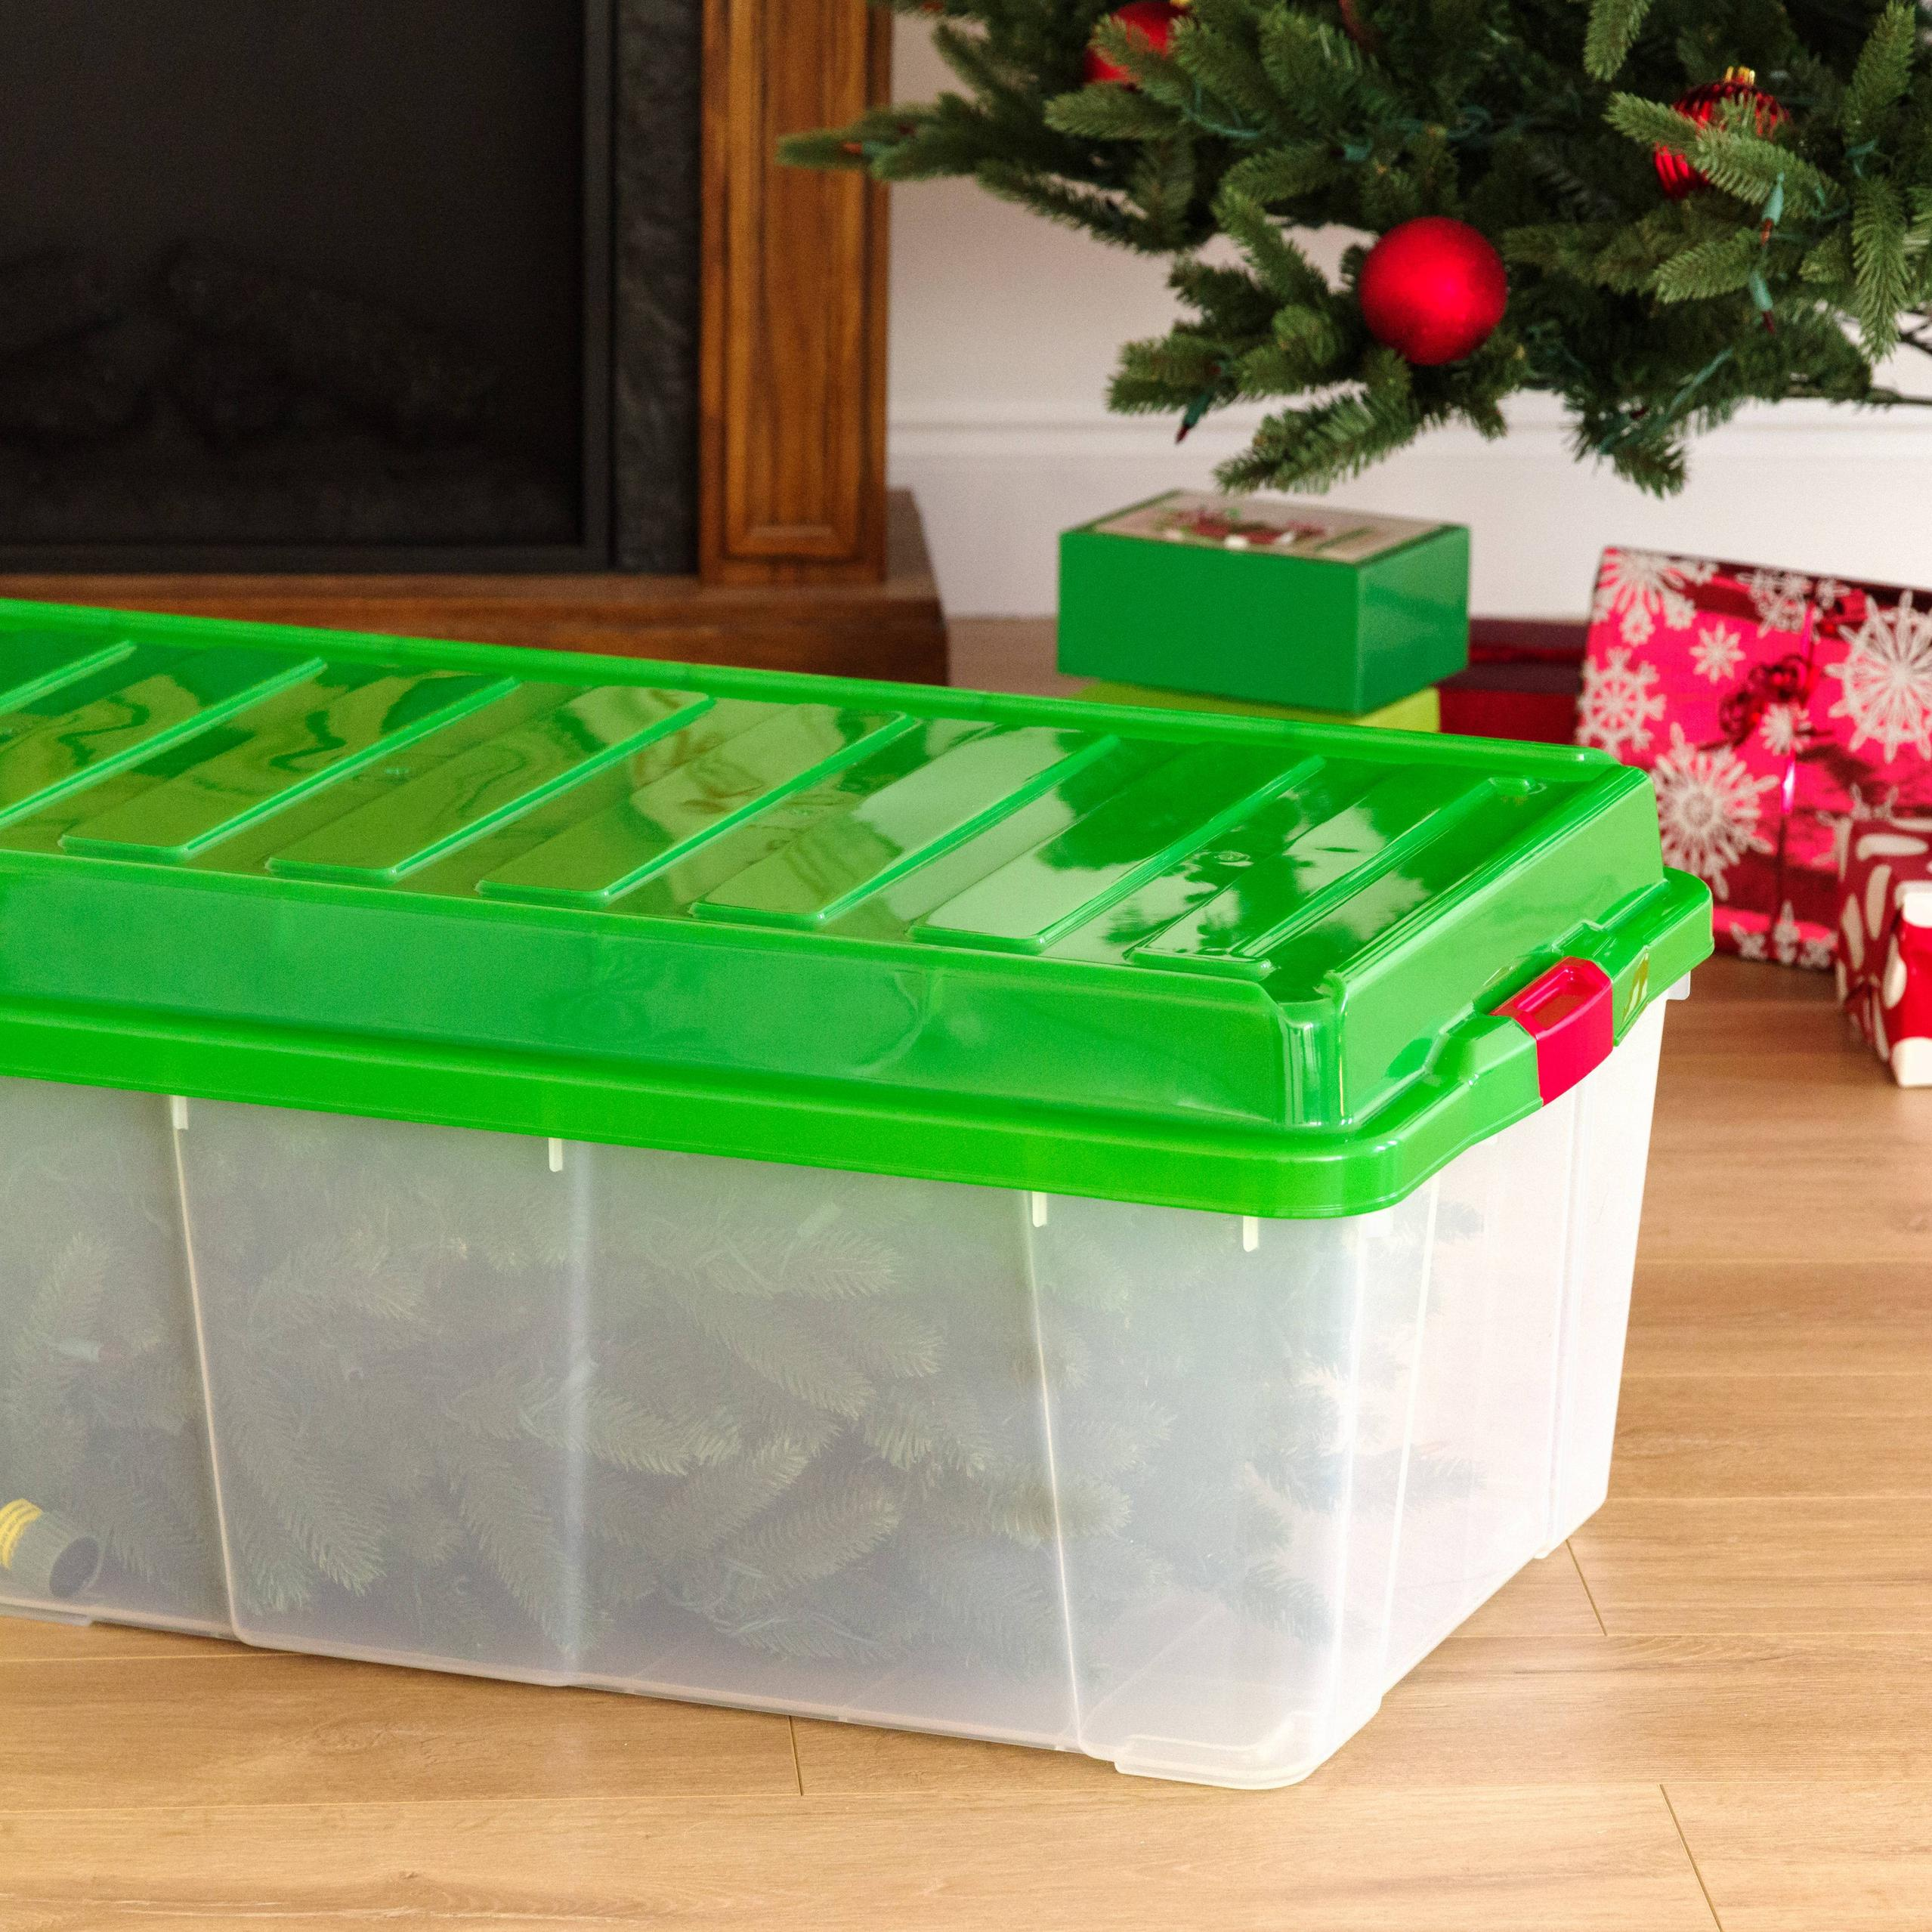 20L Plastic Christmas Eve Gift Box Pre Tub Container Storage